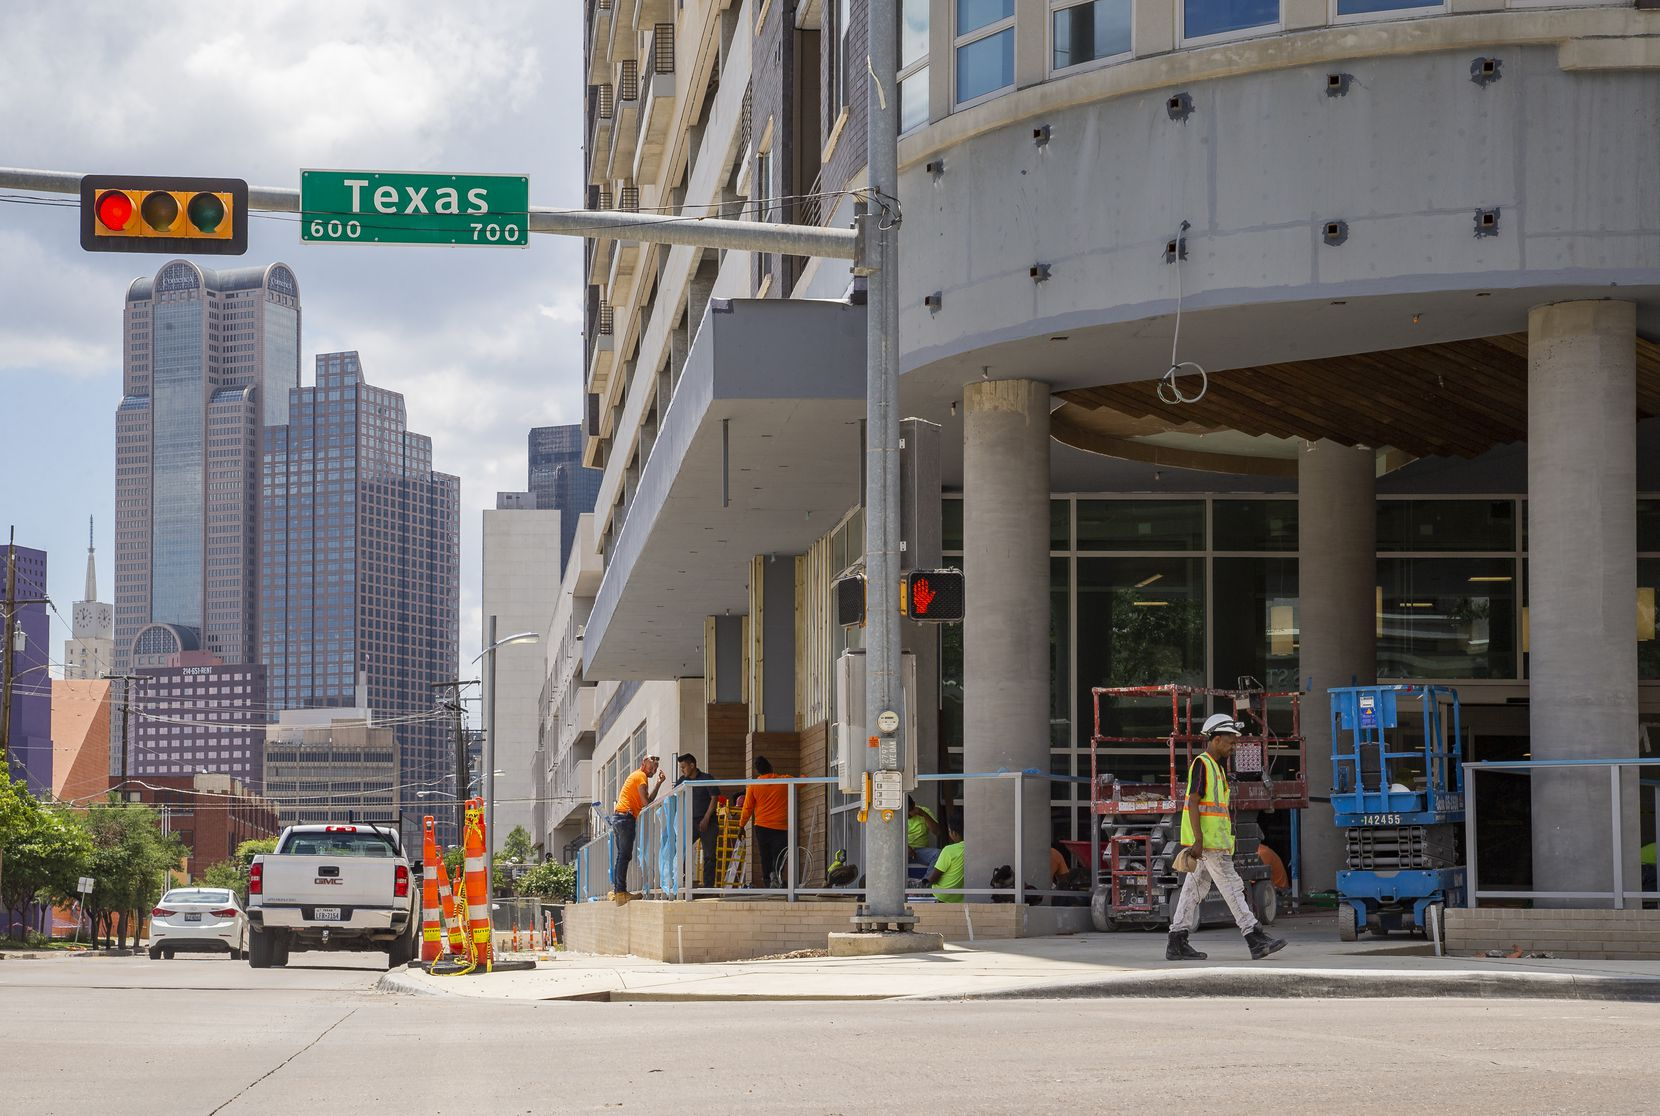 Downtown can be seen in the background of the Tom Thumb being built at Live Oak and Texas streets.